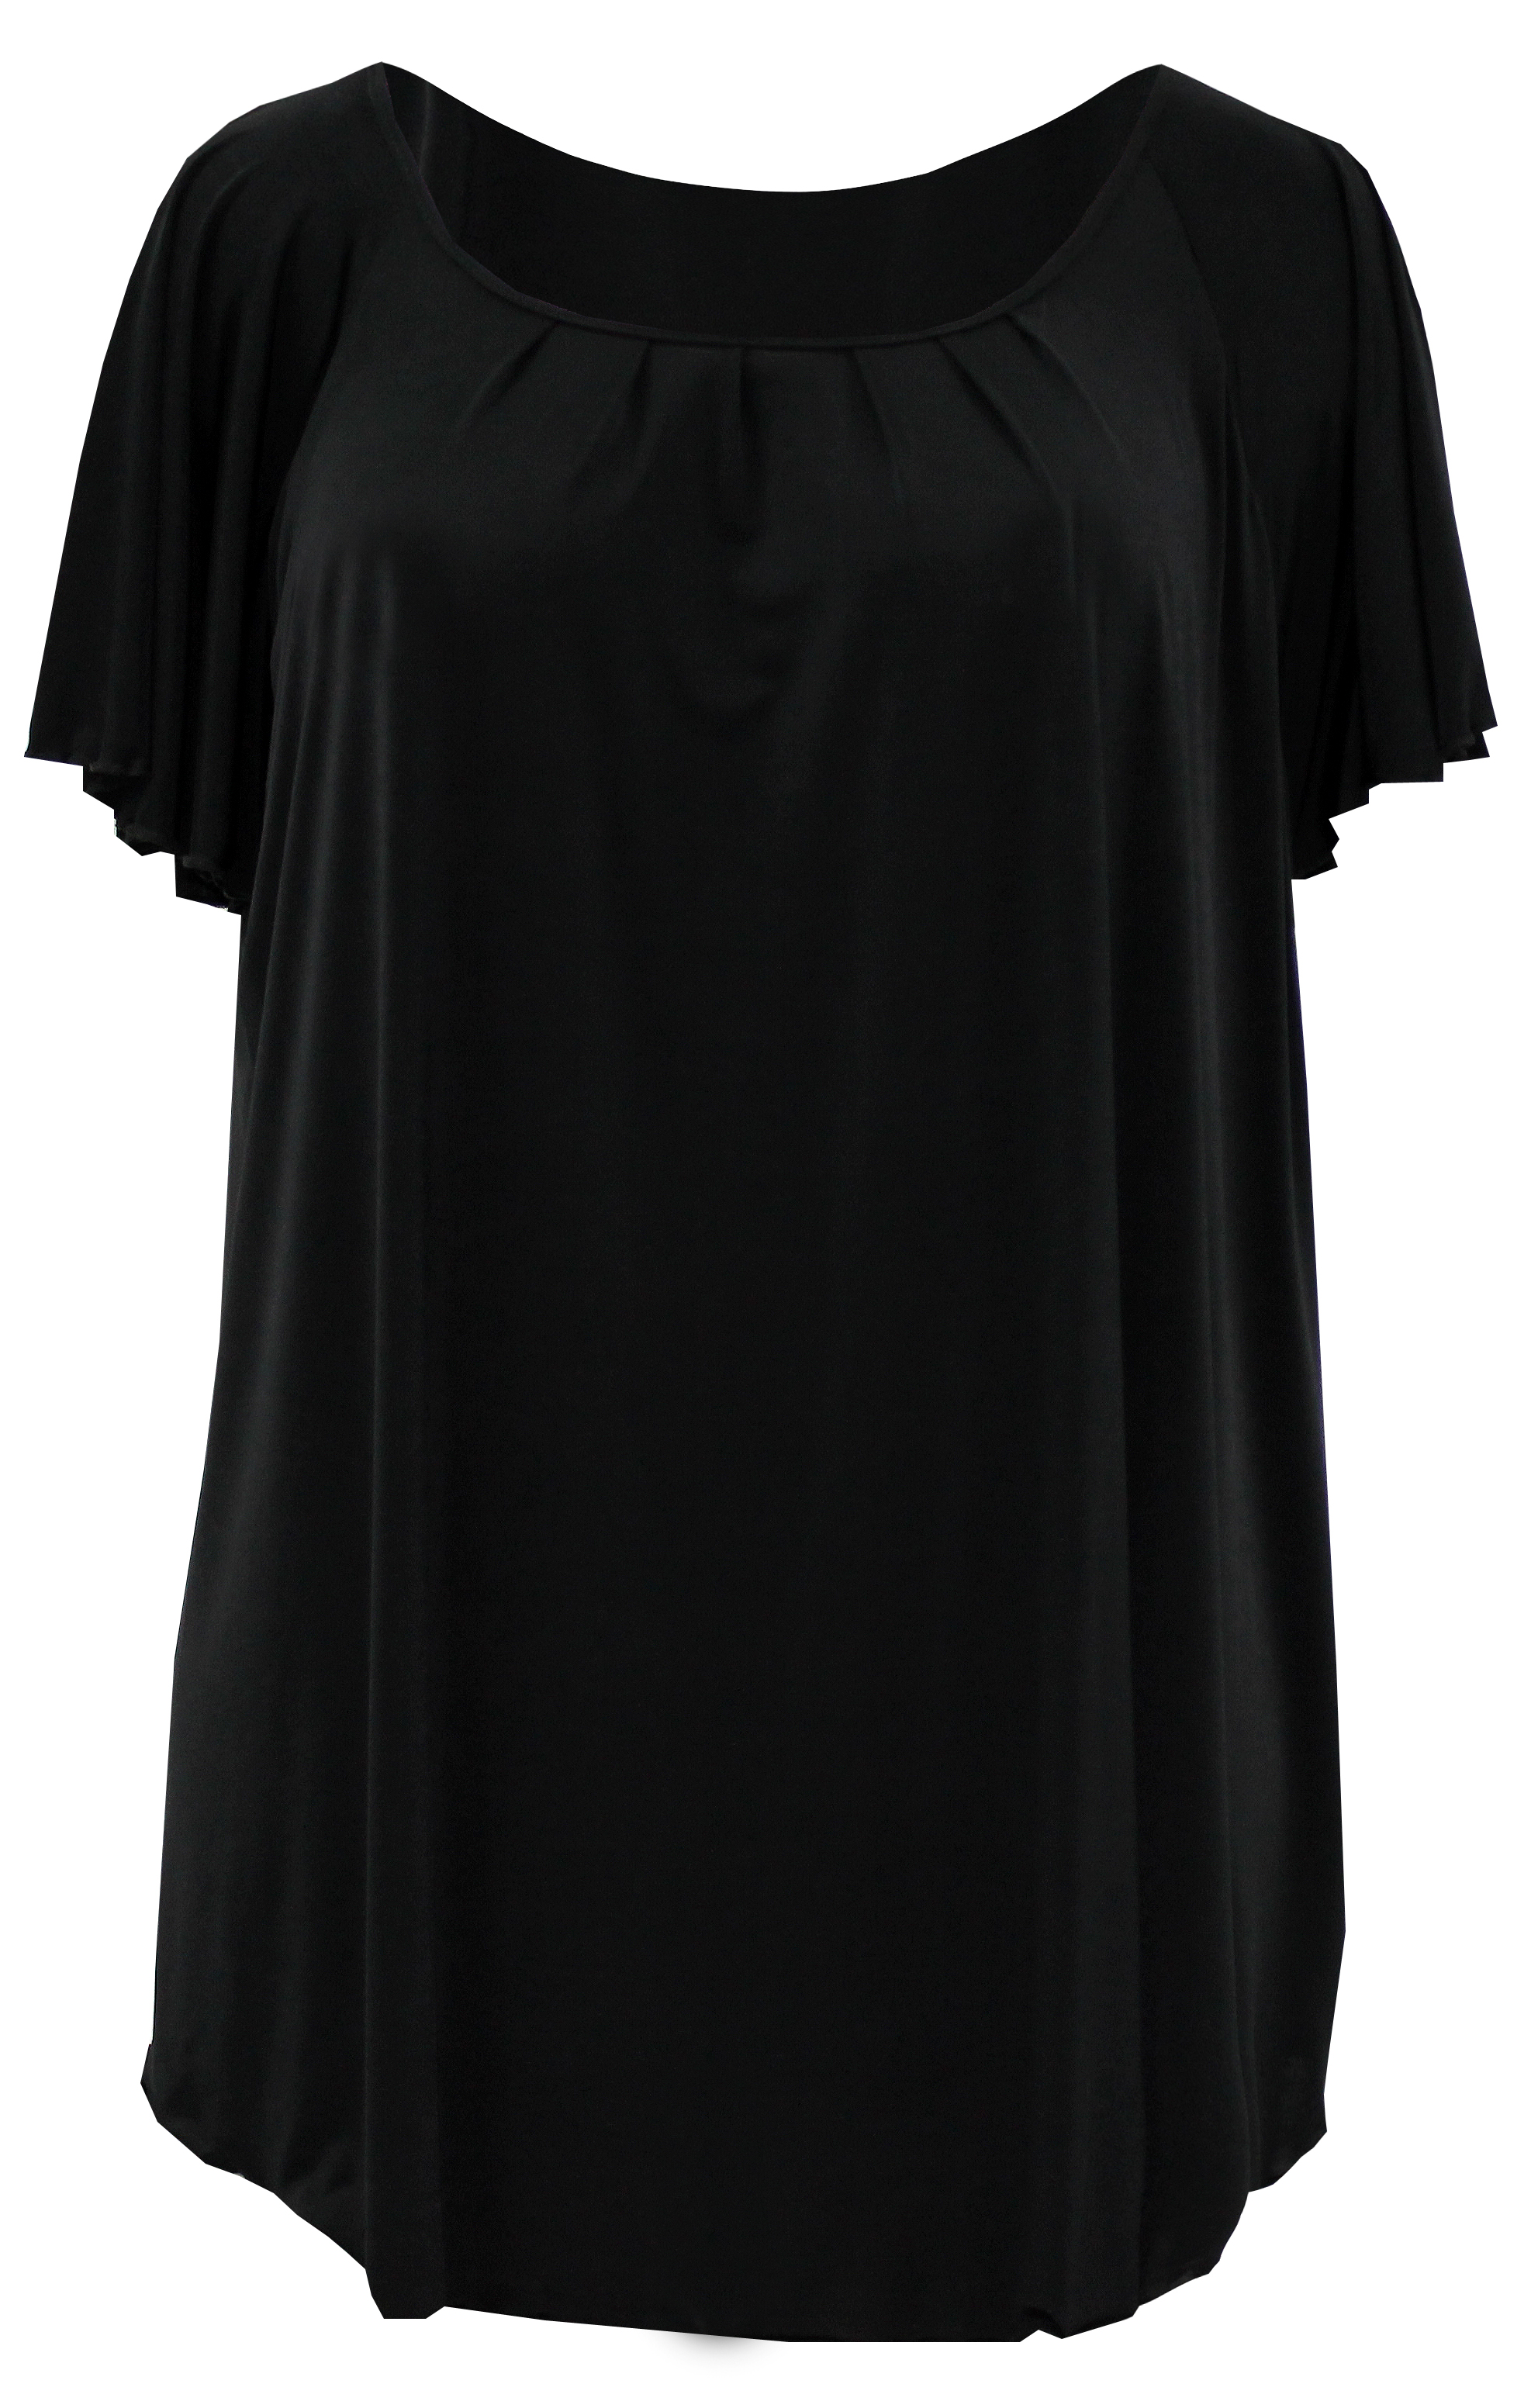 Top off your look with our women's plus size tops & sweaters. Our work-friendly and casual tops and sweaters are versatile favorites at great values. Our pretty selection of plus size tops includes the best-selling Women's Plus Size Long Sleeve Stretch Poplin Shirt, cozy turtleneck sweaters and ribbed sweaters designed to fit and flatter curves.